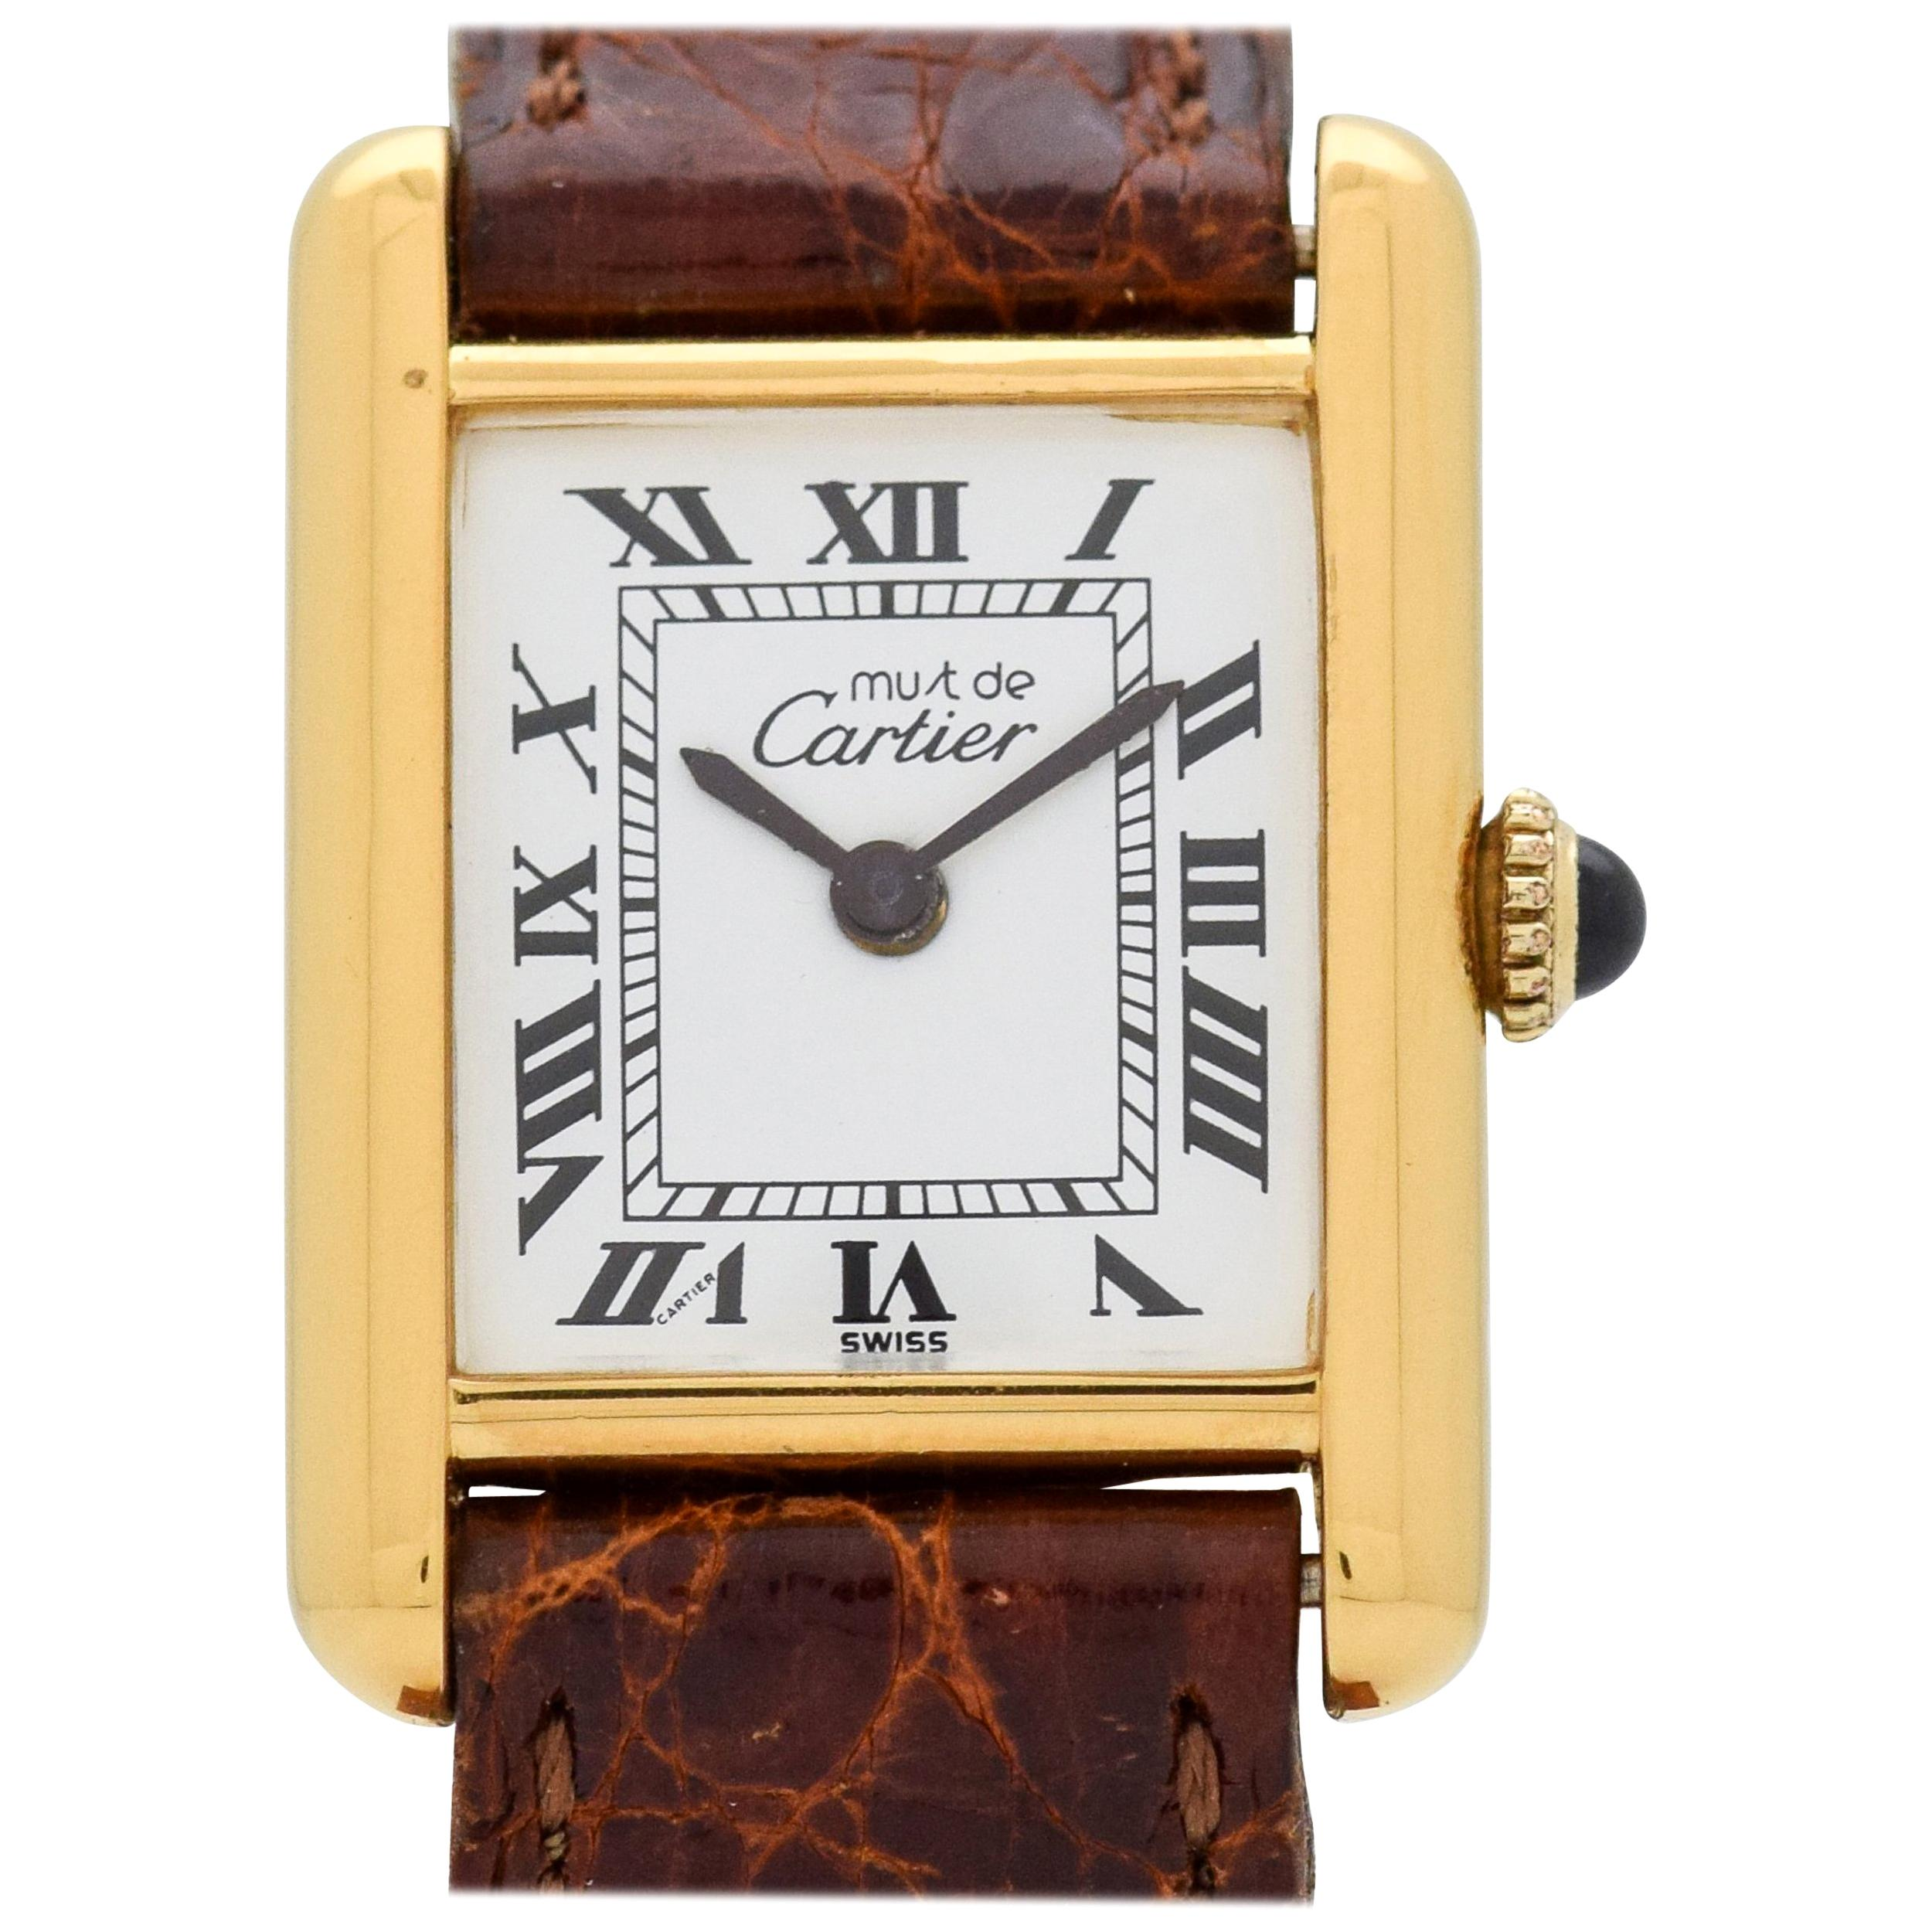 f57793d7d6b1 Cartier Watches - 1